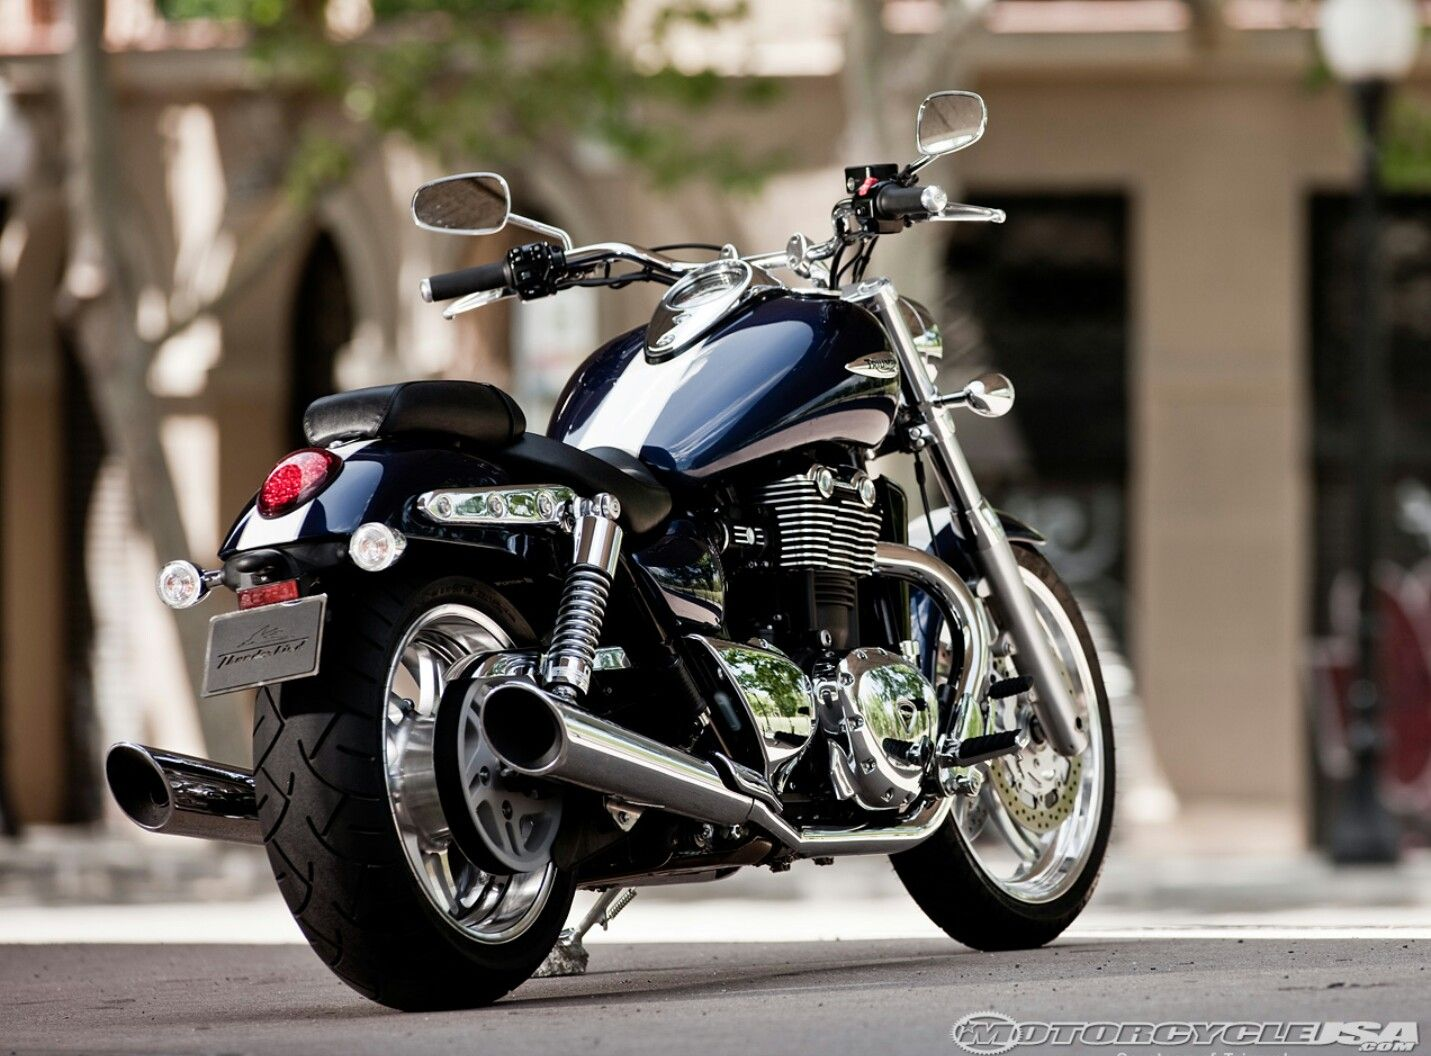 2010 thunderbird 1600 my bike triumph thunderbird. Black Bedroom Furniture Sets. Home Design Ideas